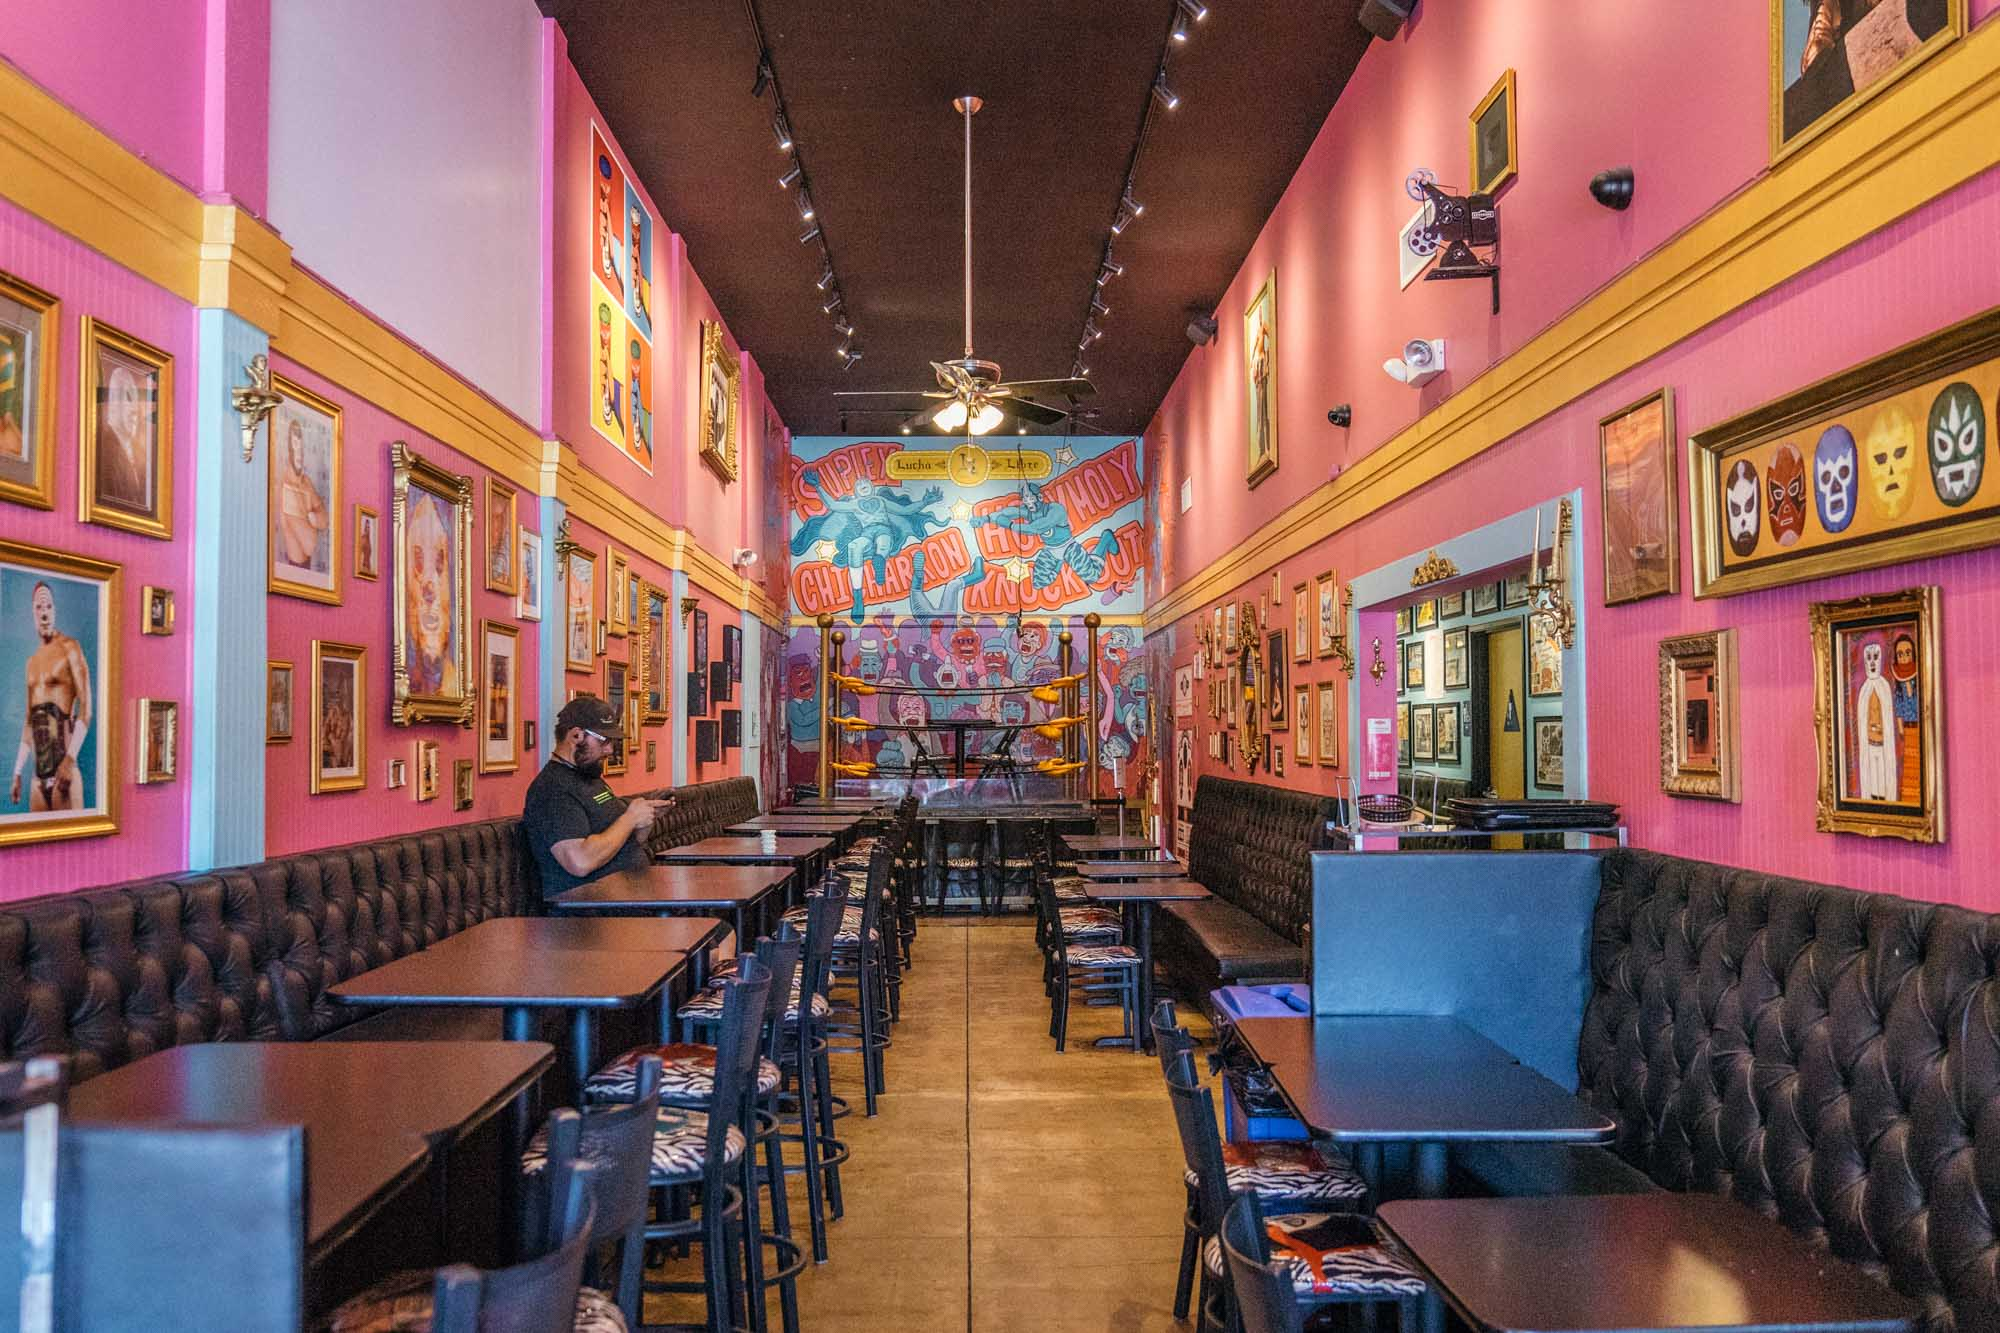 The pink interior of Lucha Libre restaurant in San Diego for Dirt Road Travels